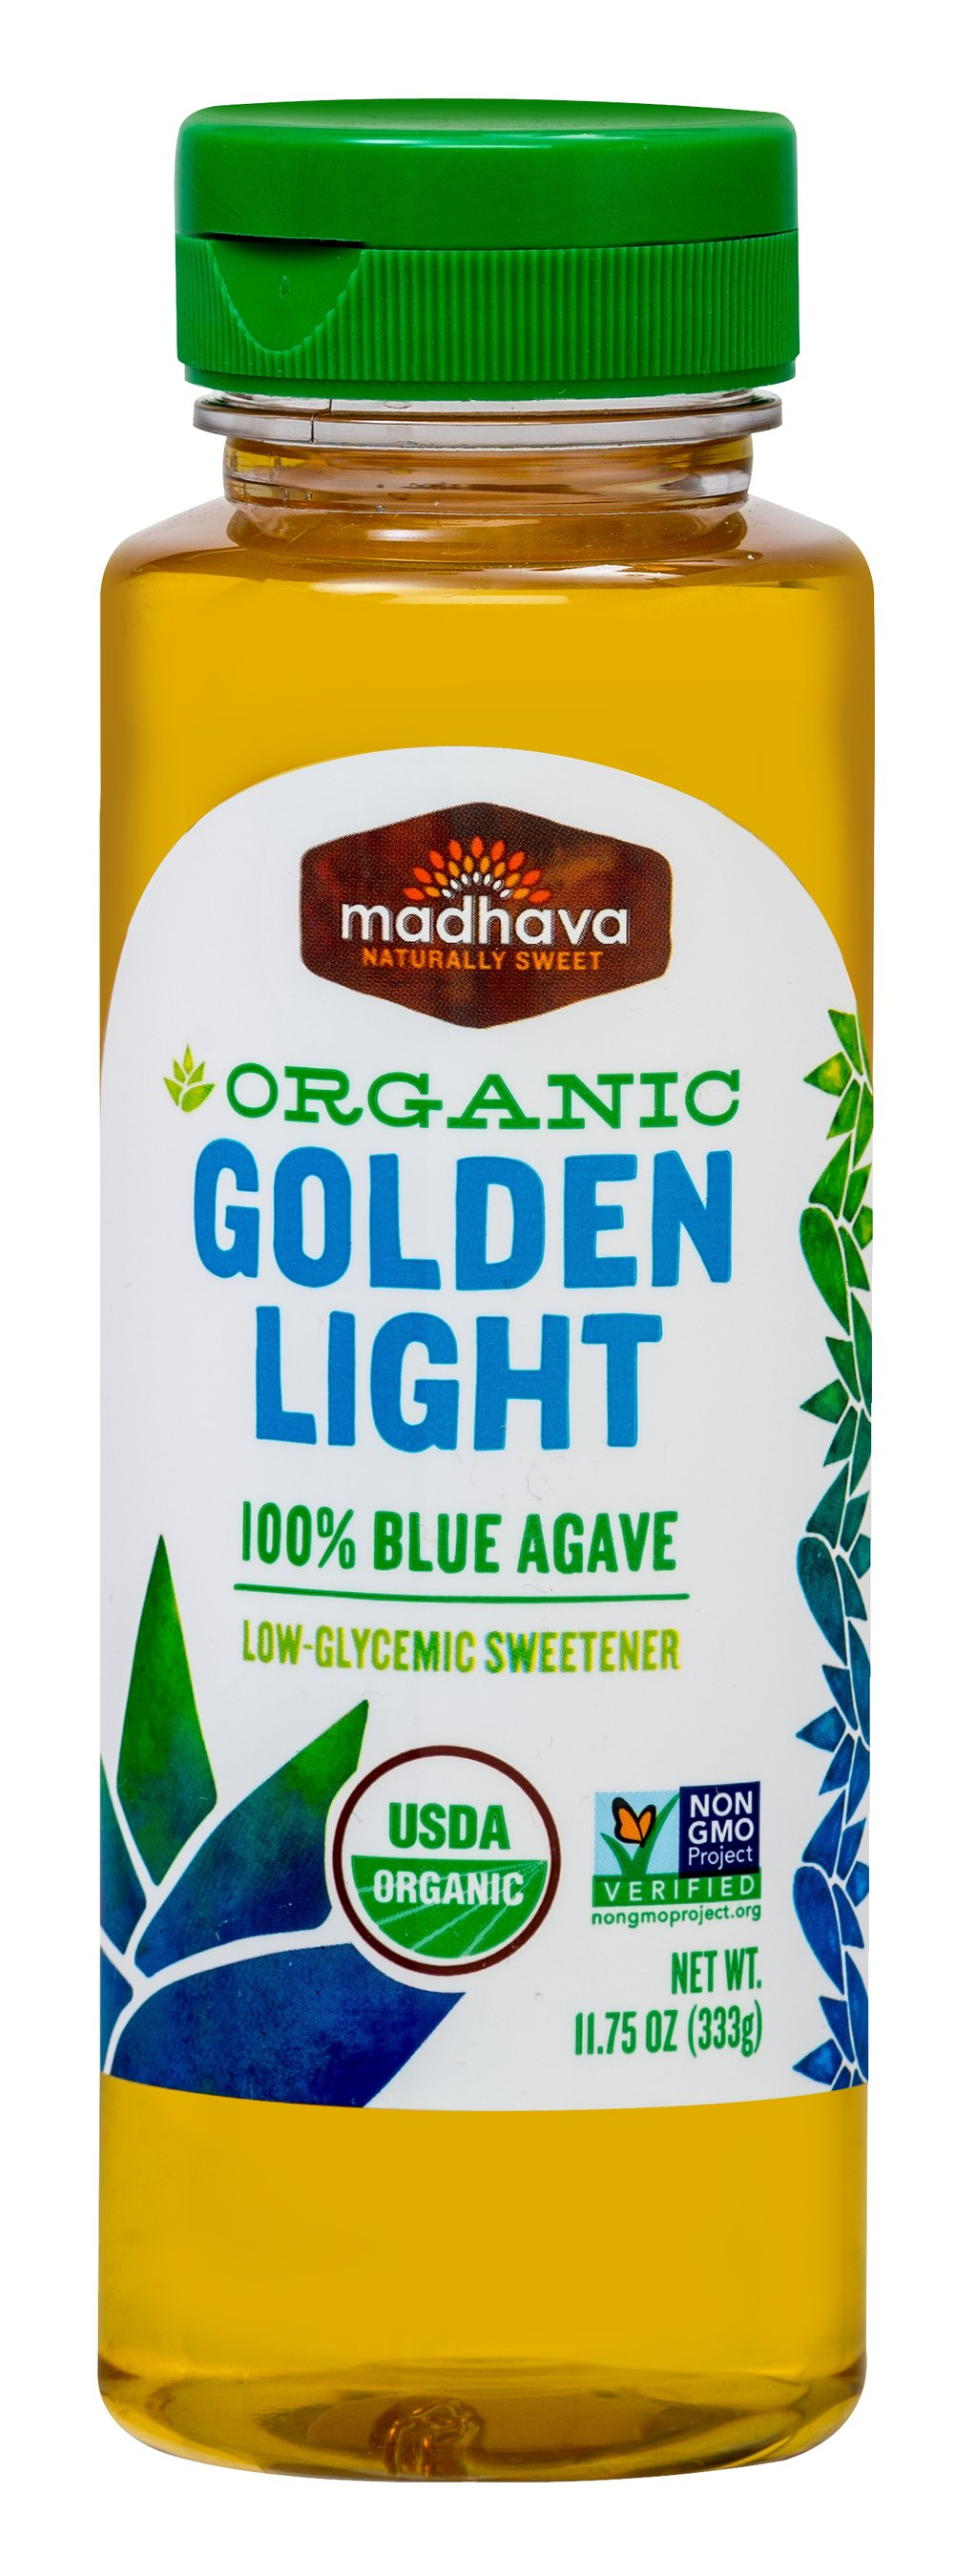 Organic Light Agave  11.75 oz Bottle  $11.49